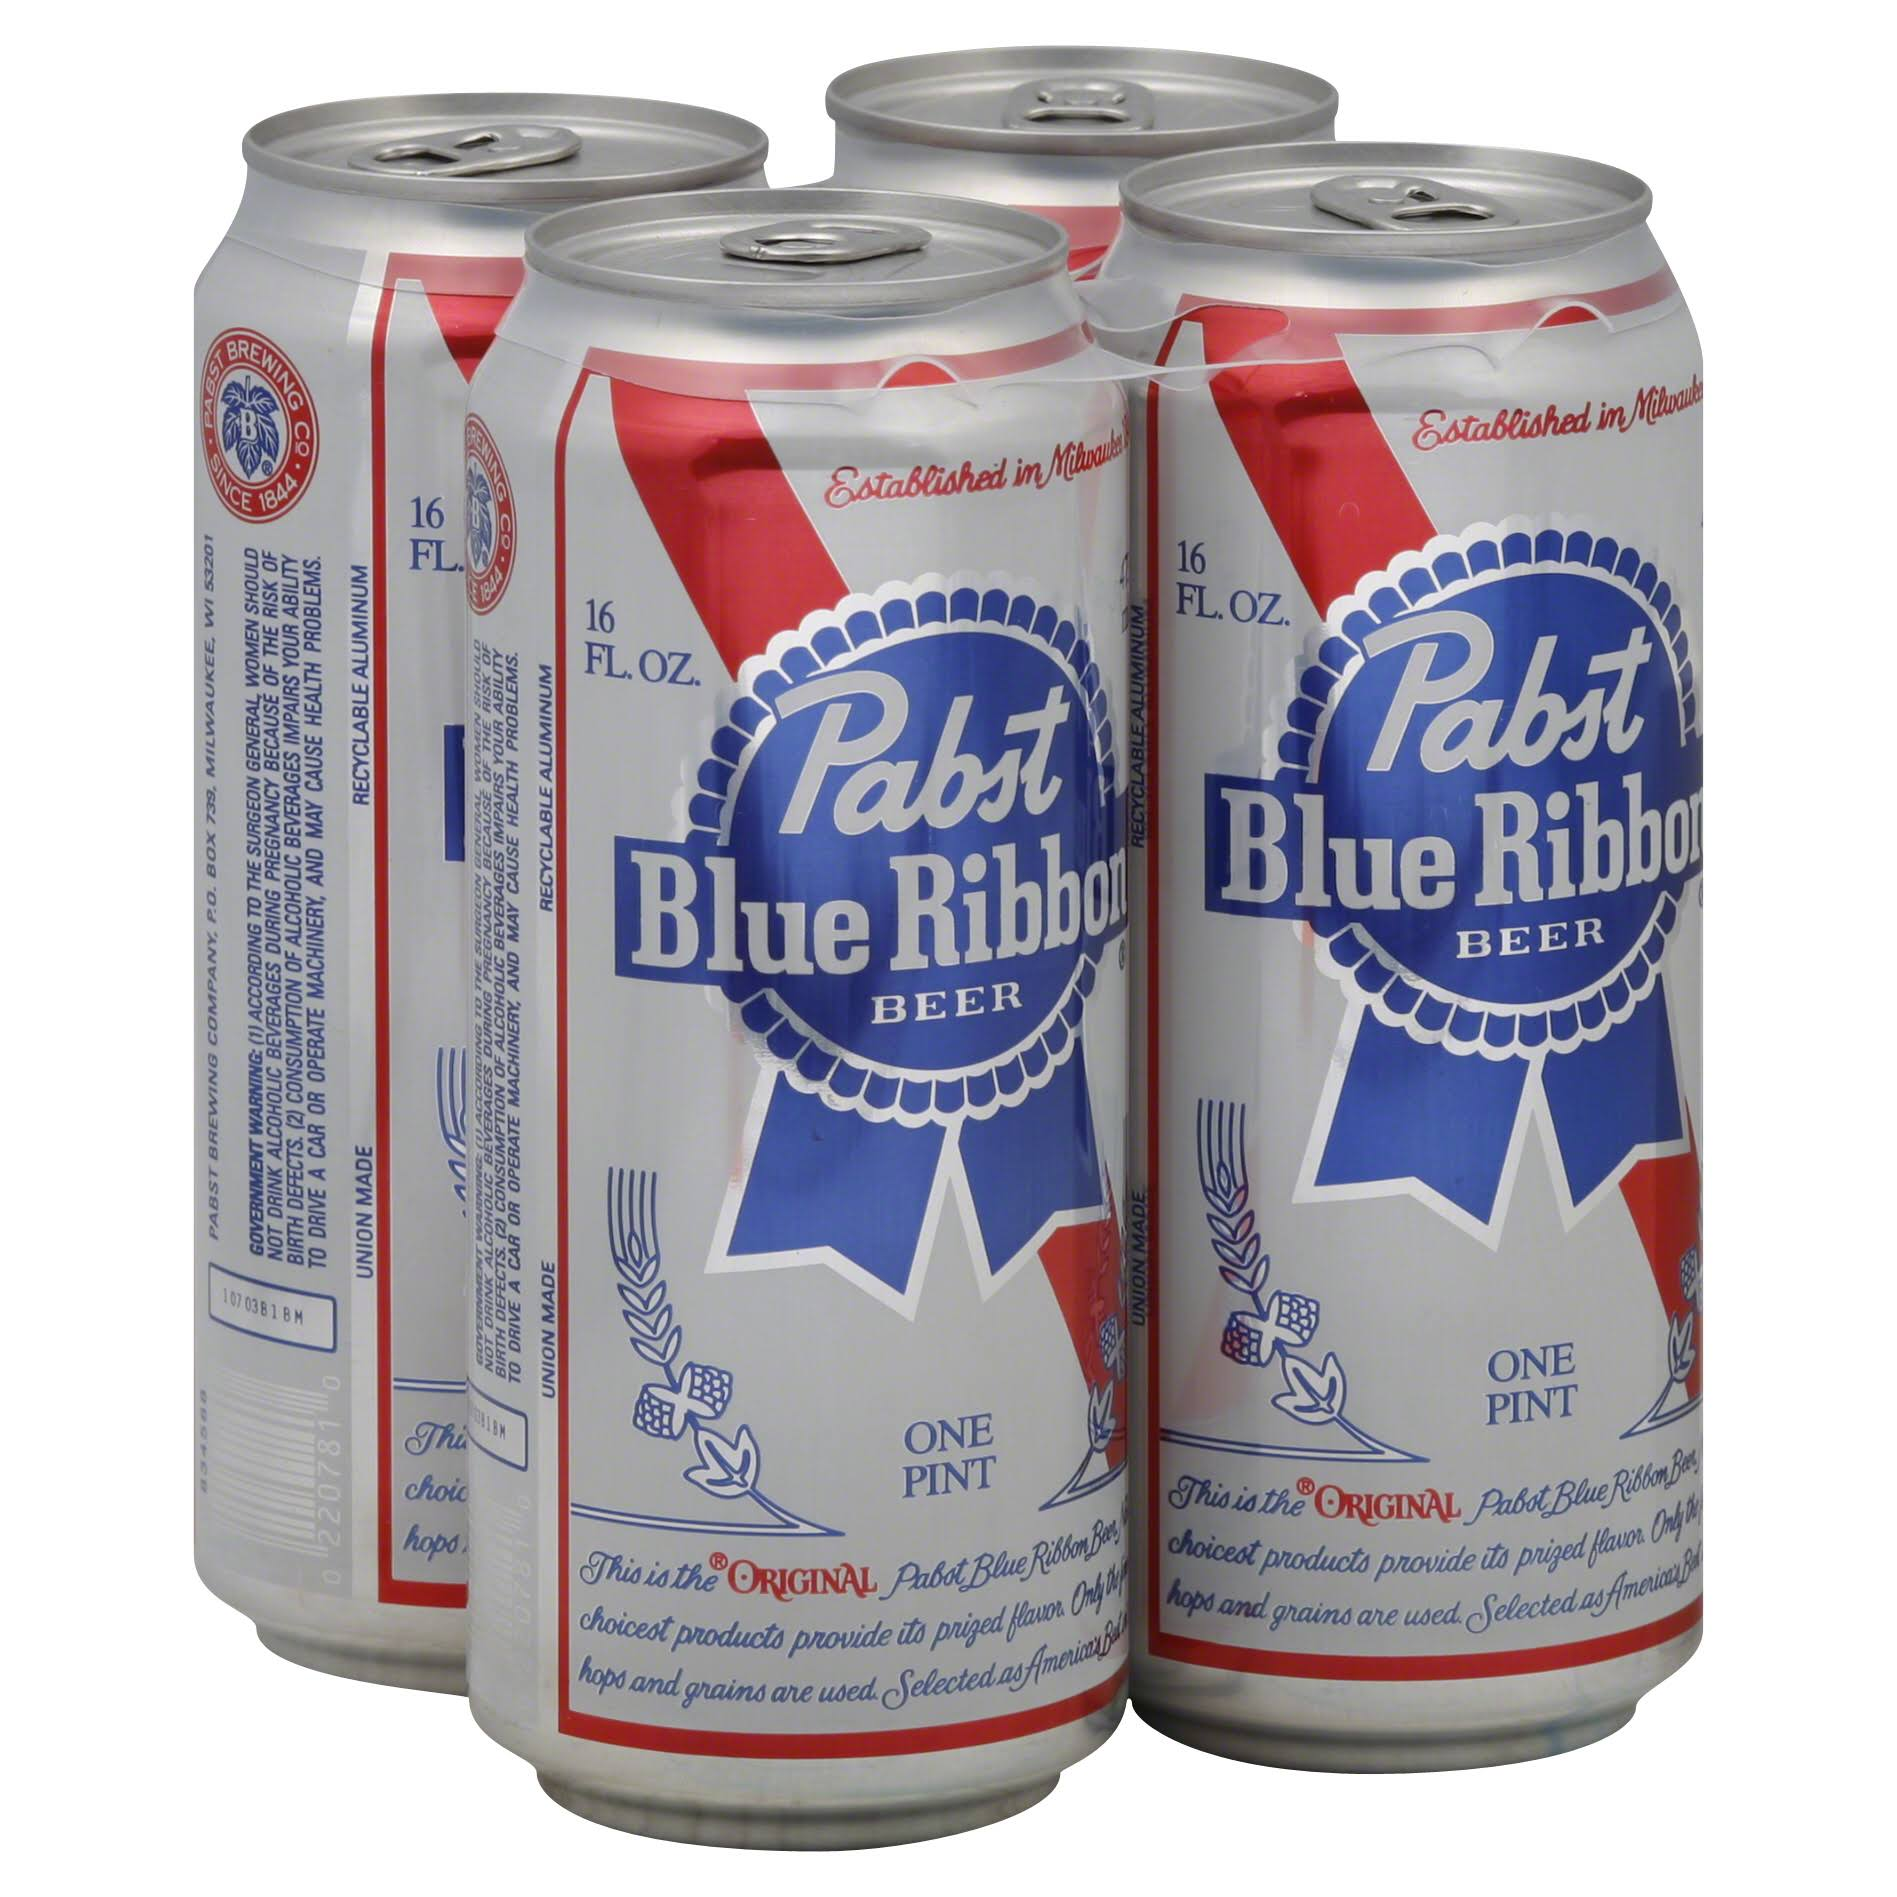 Pabst Blue Ribbon Beers - 4x16oz